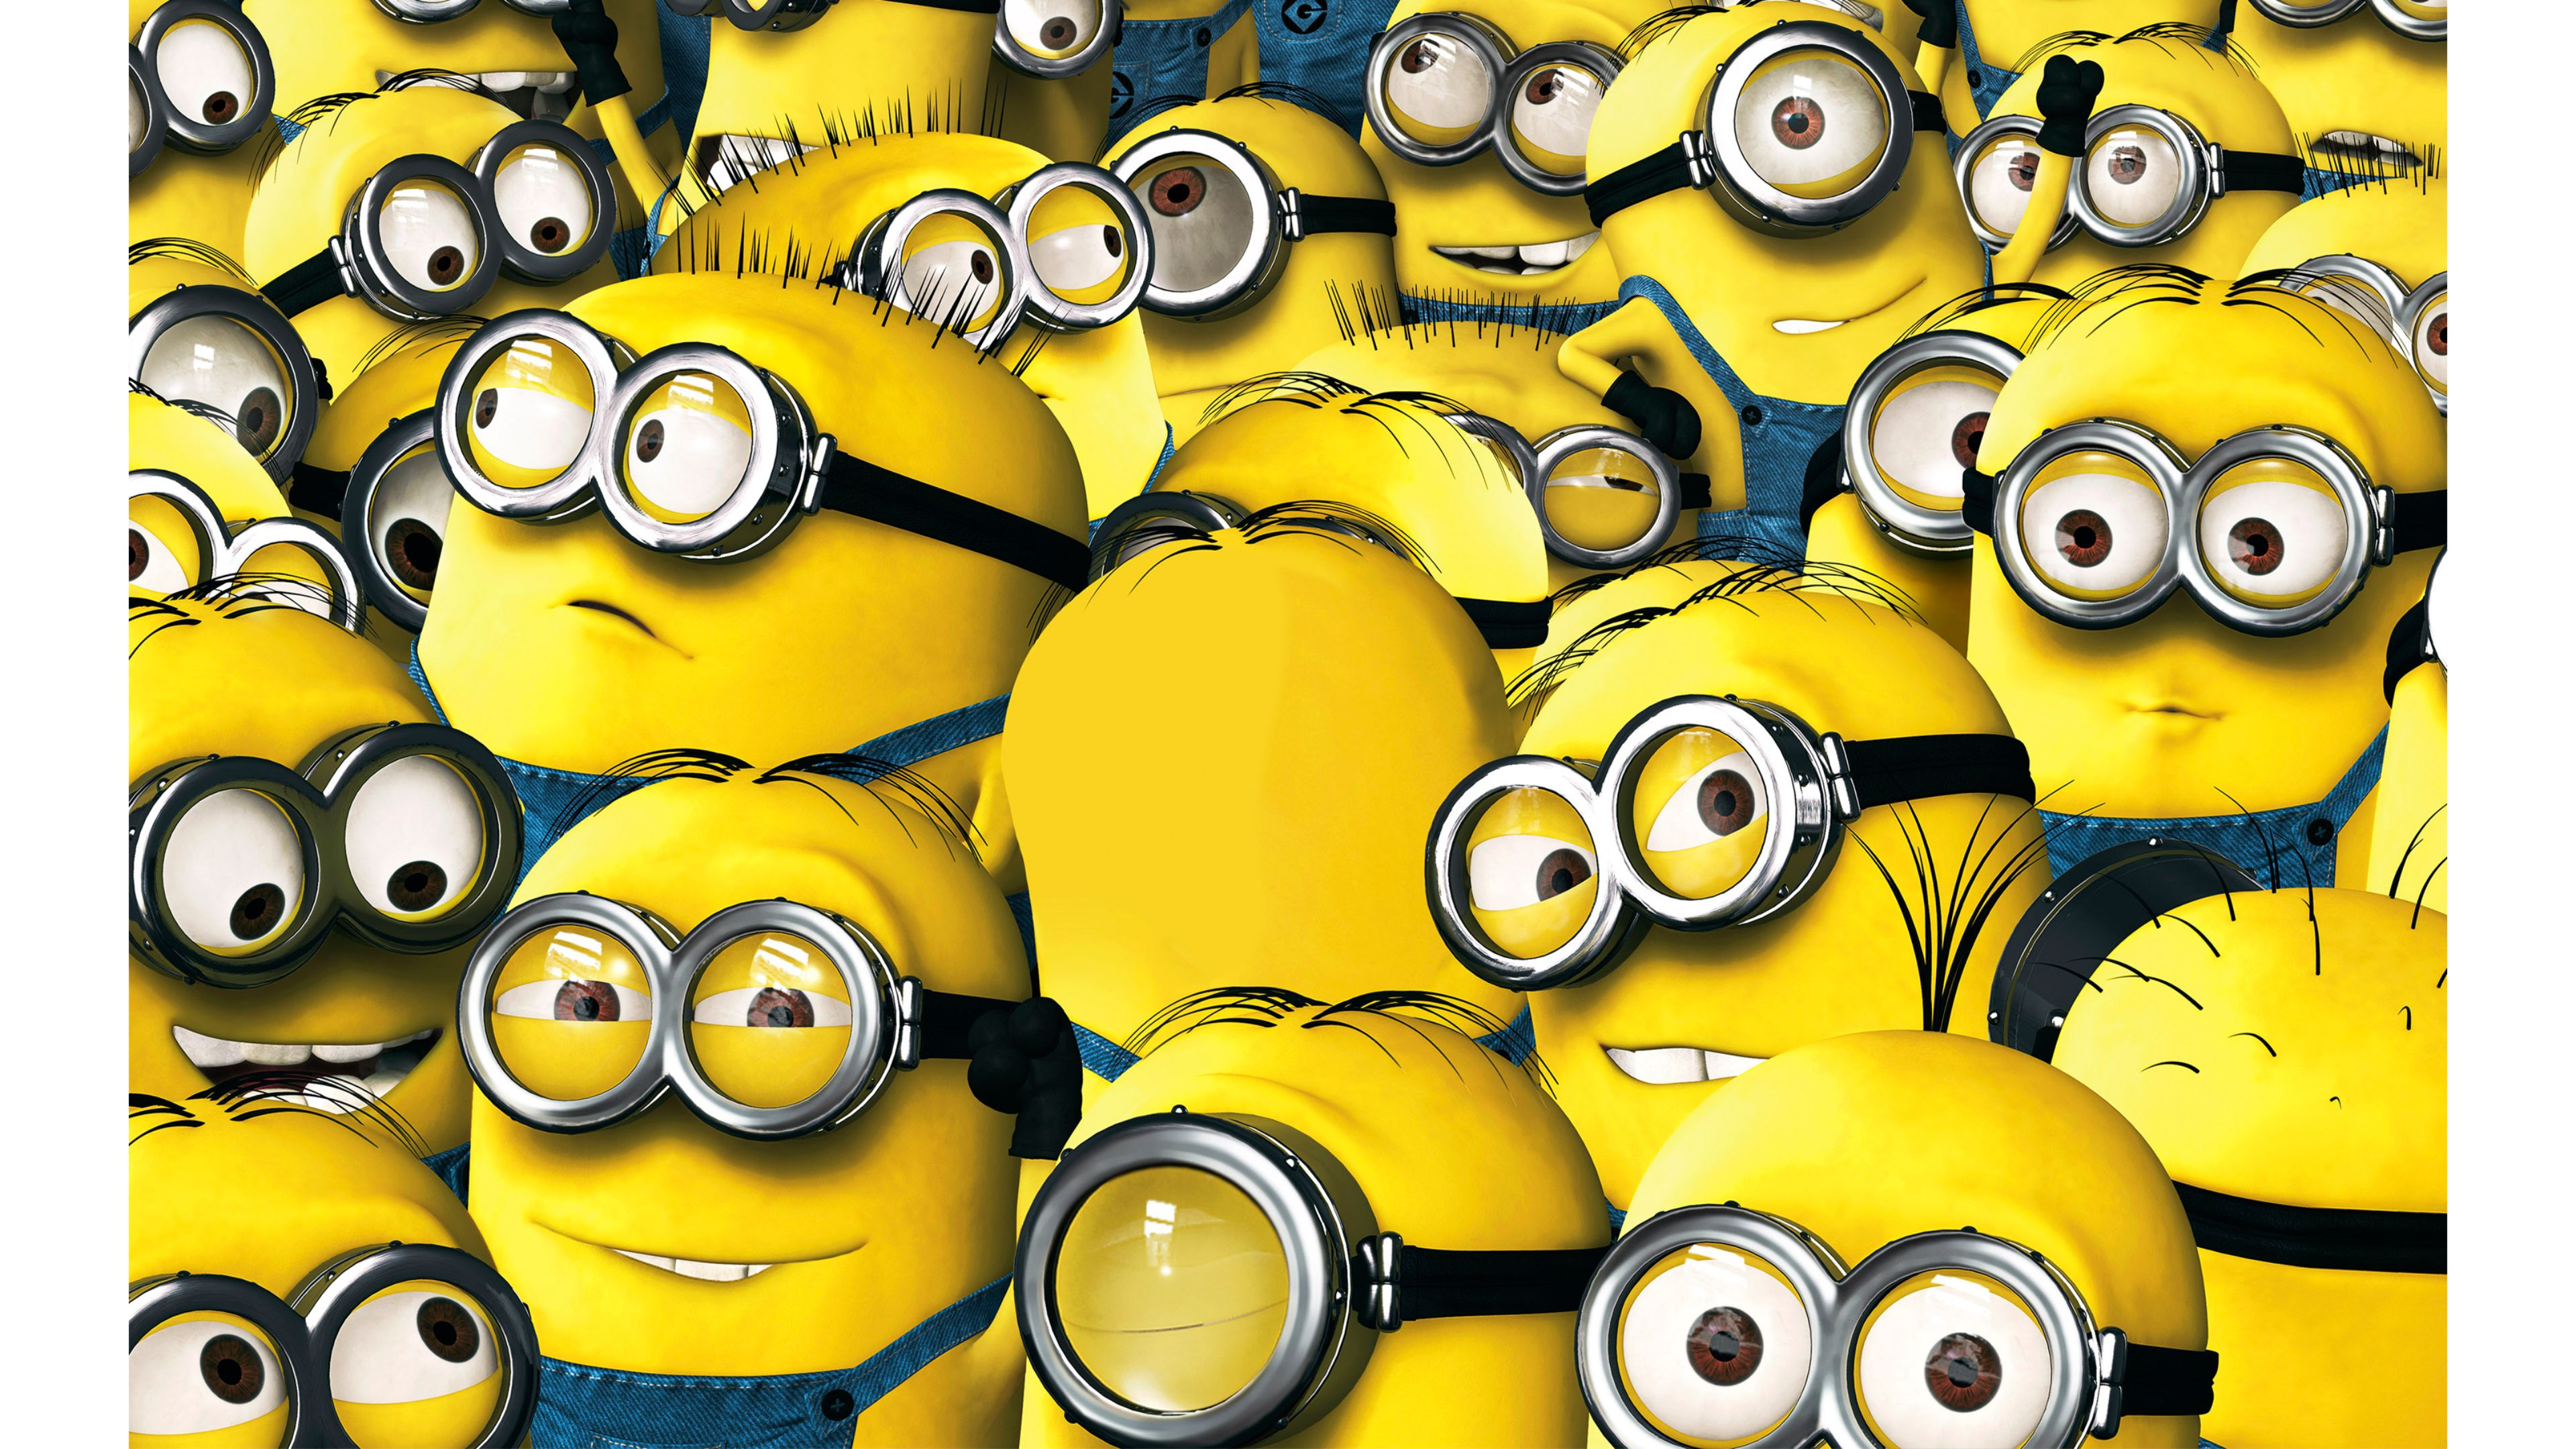 Minions Hd Wallpapers For Mobile Free Download Brownbeast